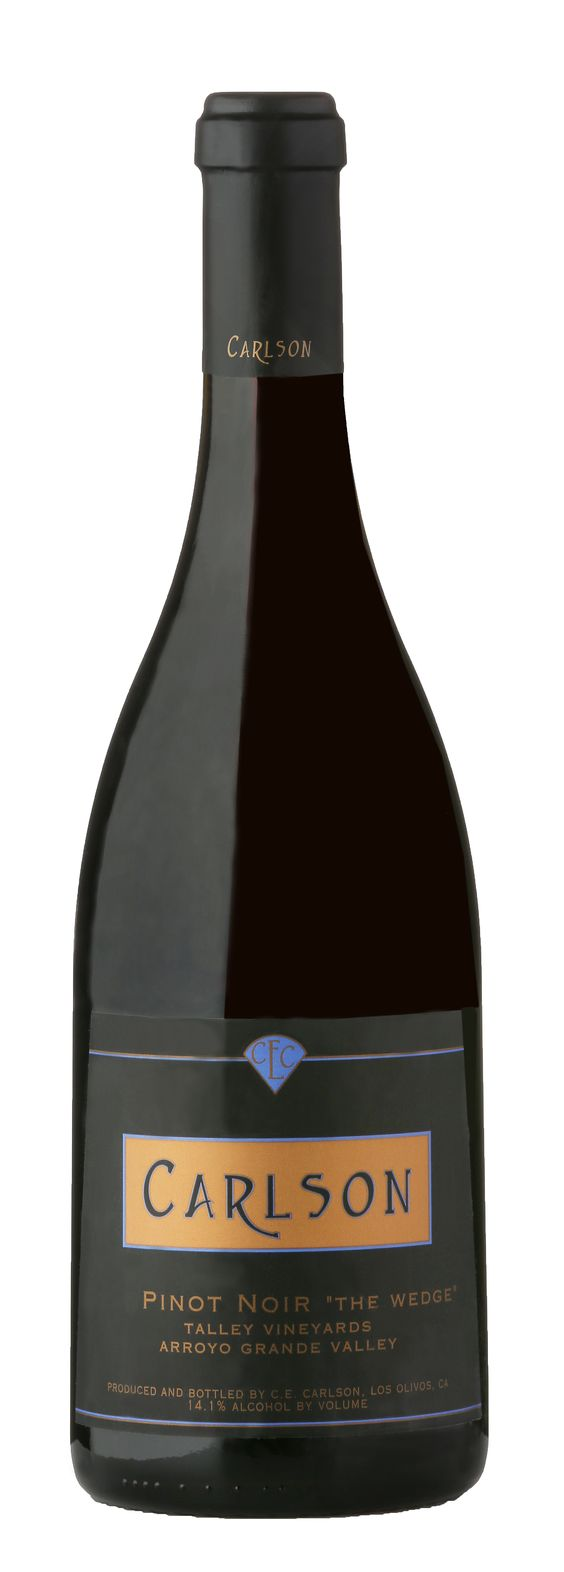 grapestobottles.com posting: 'The Wedge' Talley Vineyards. This wine is a bit riper and richer in flavor due to the warmer growing conditons of the 209 vintage. It has a nice, darker red fruit aroma, dark cheries, with a touch of tobaco, earth and spice.   #Wine